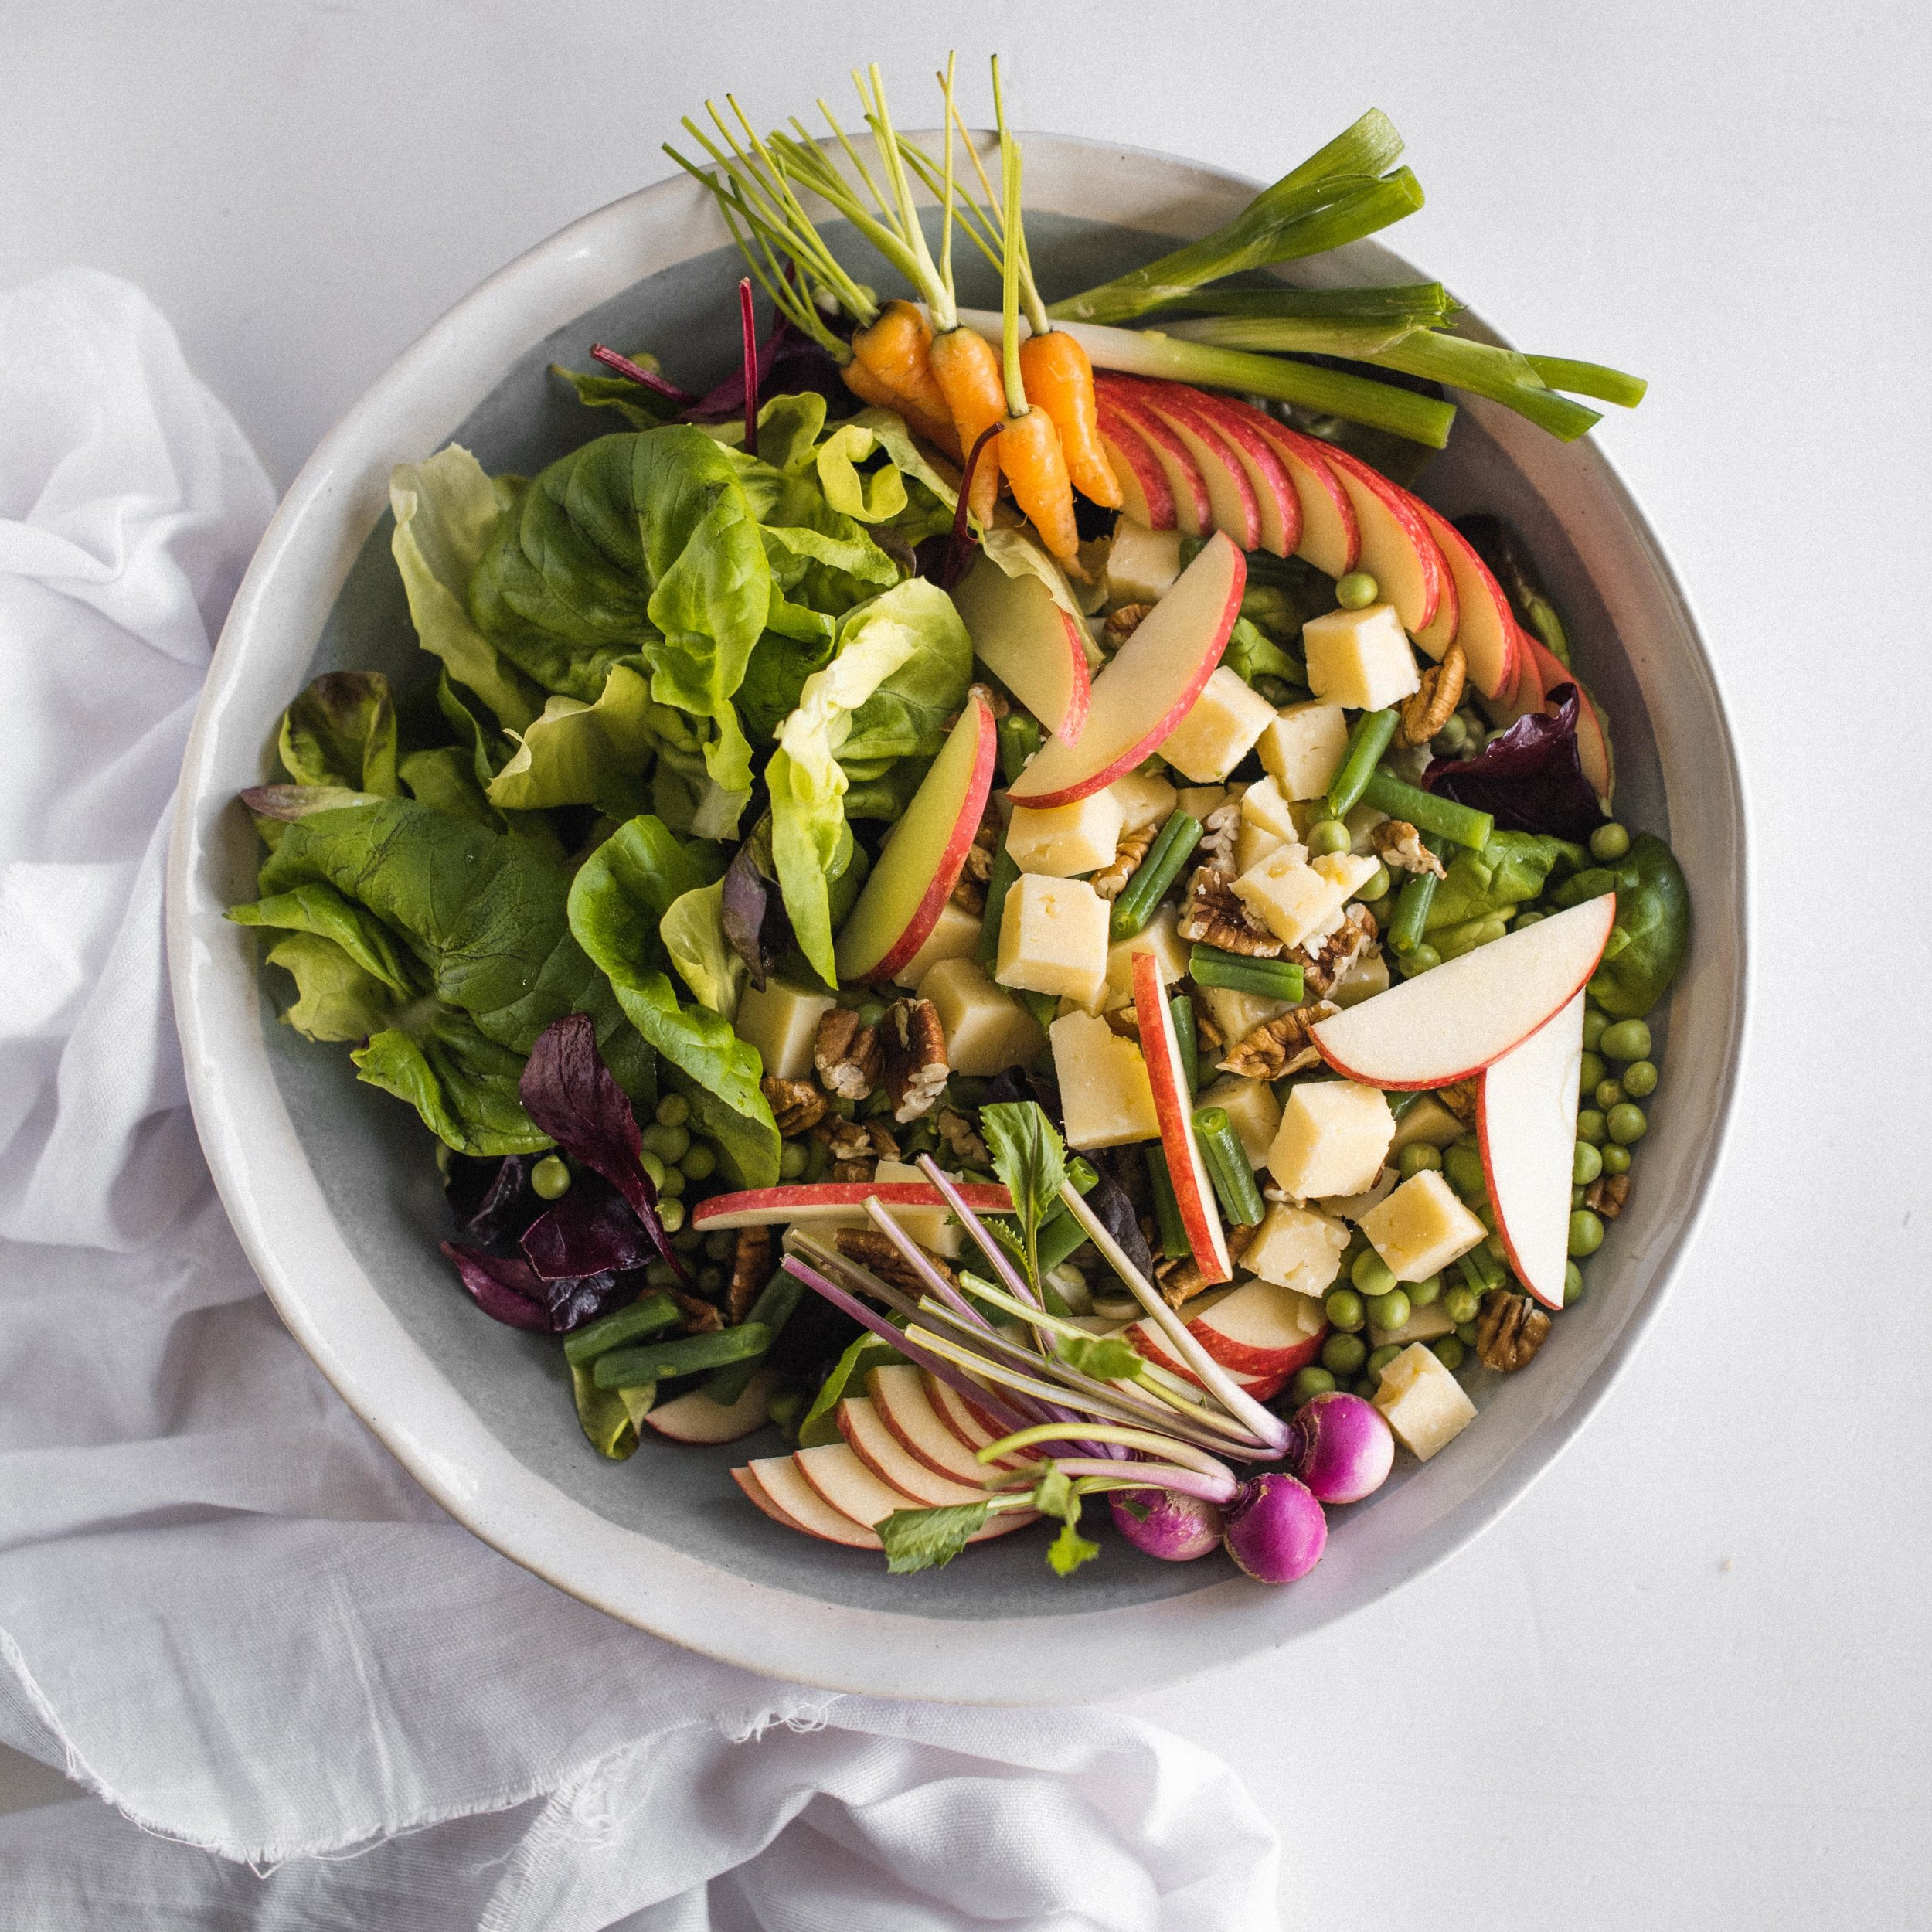 strong>Apple, cheddar cheese & pecan nut salad</strong